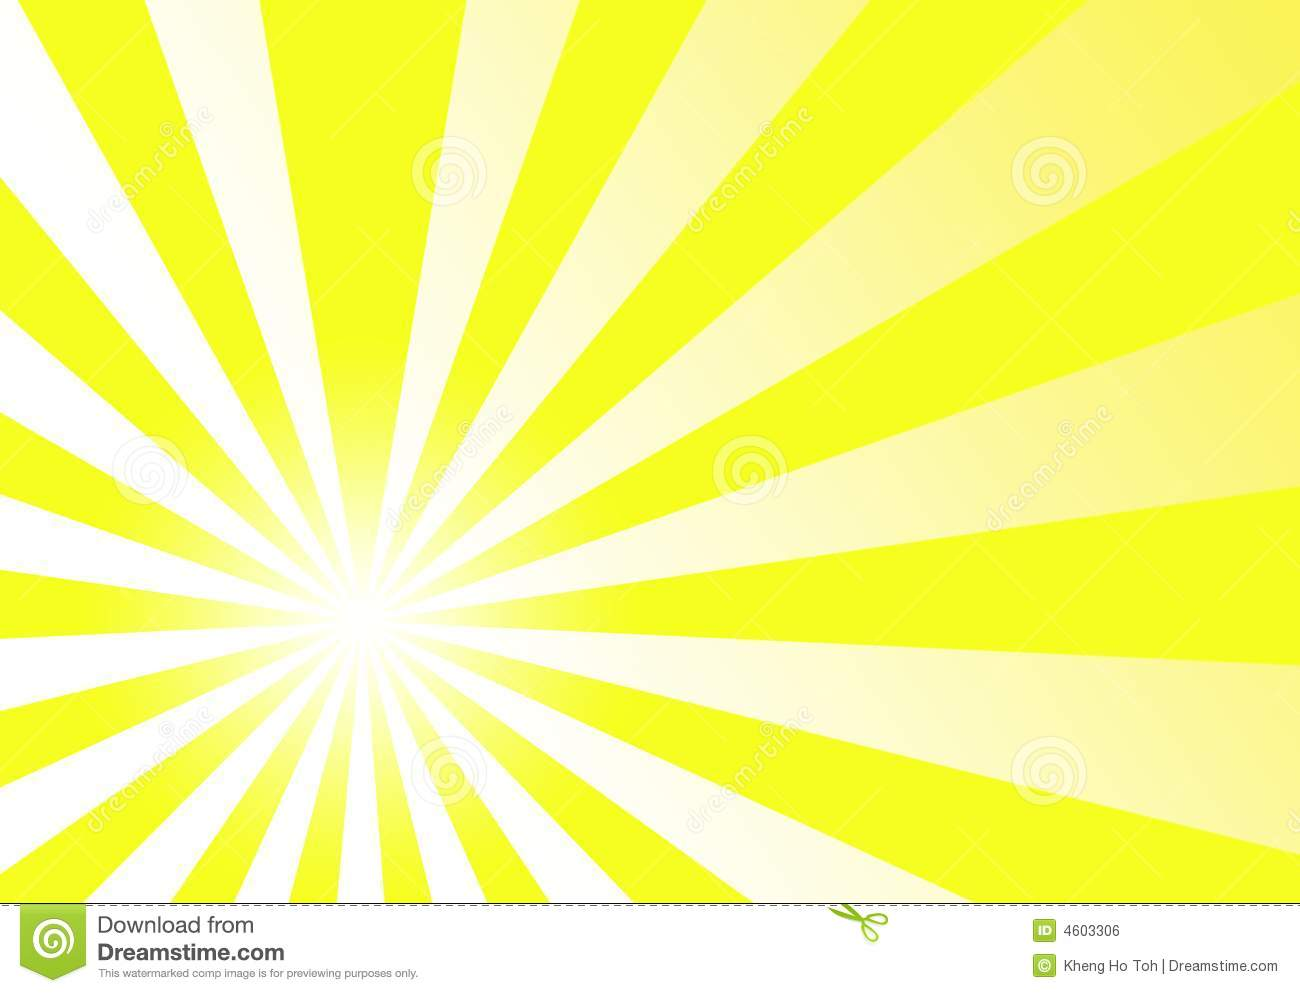 Covered clipart bacground Yellow Clip  clipart Download